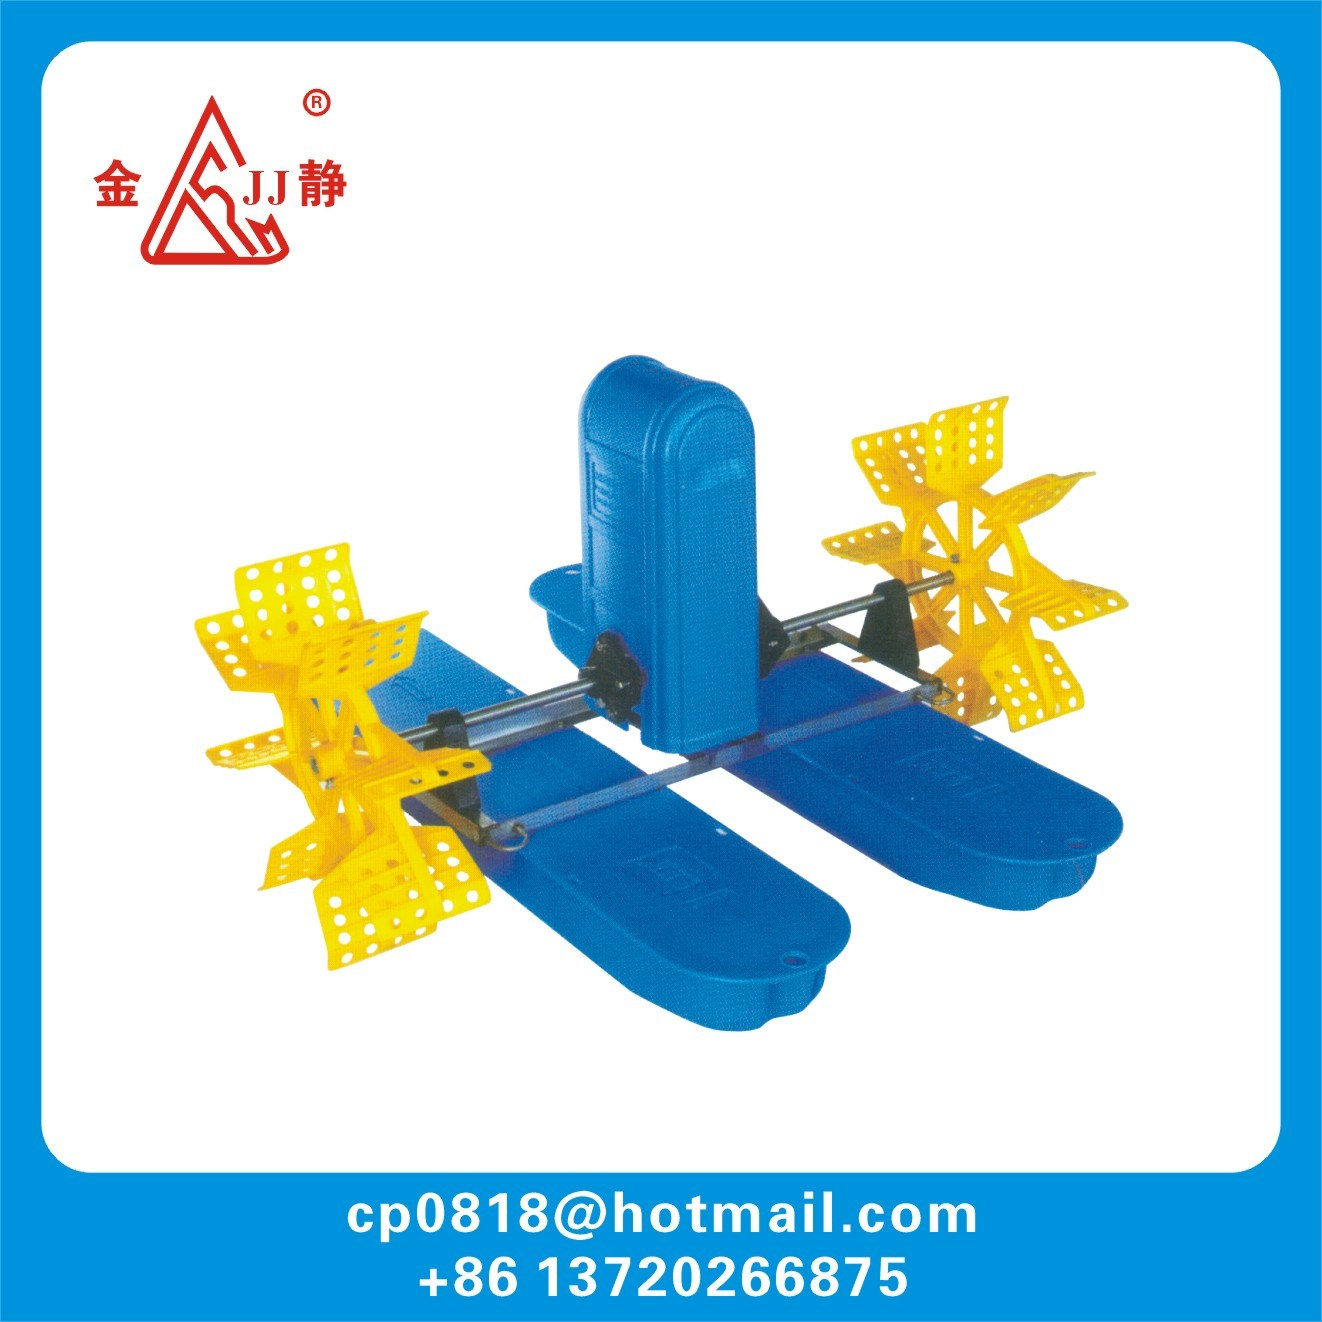 1HP Pond Aerator Fish Farming Impeller Paddlewheel Aerator